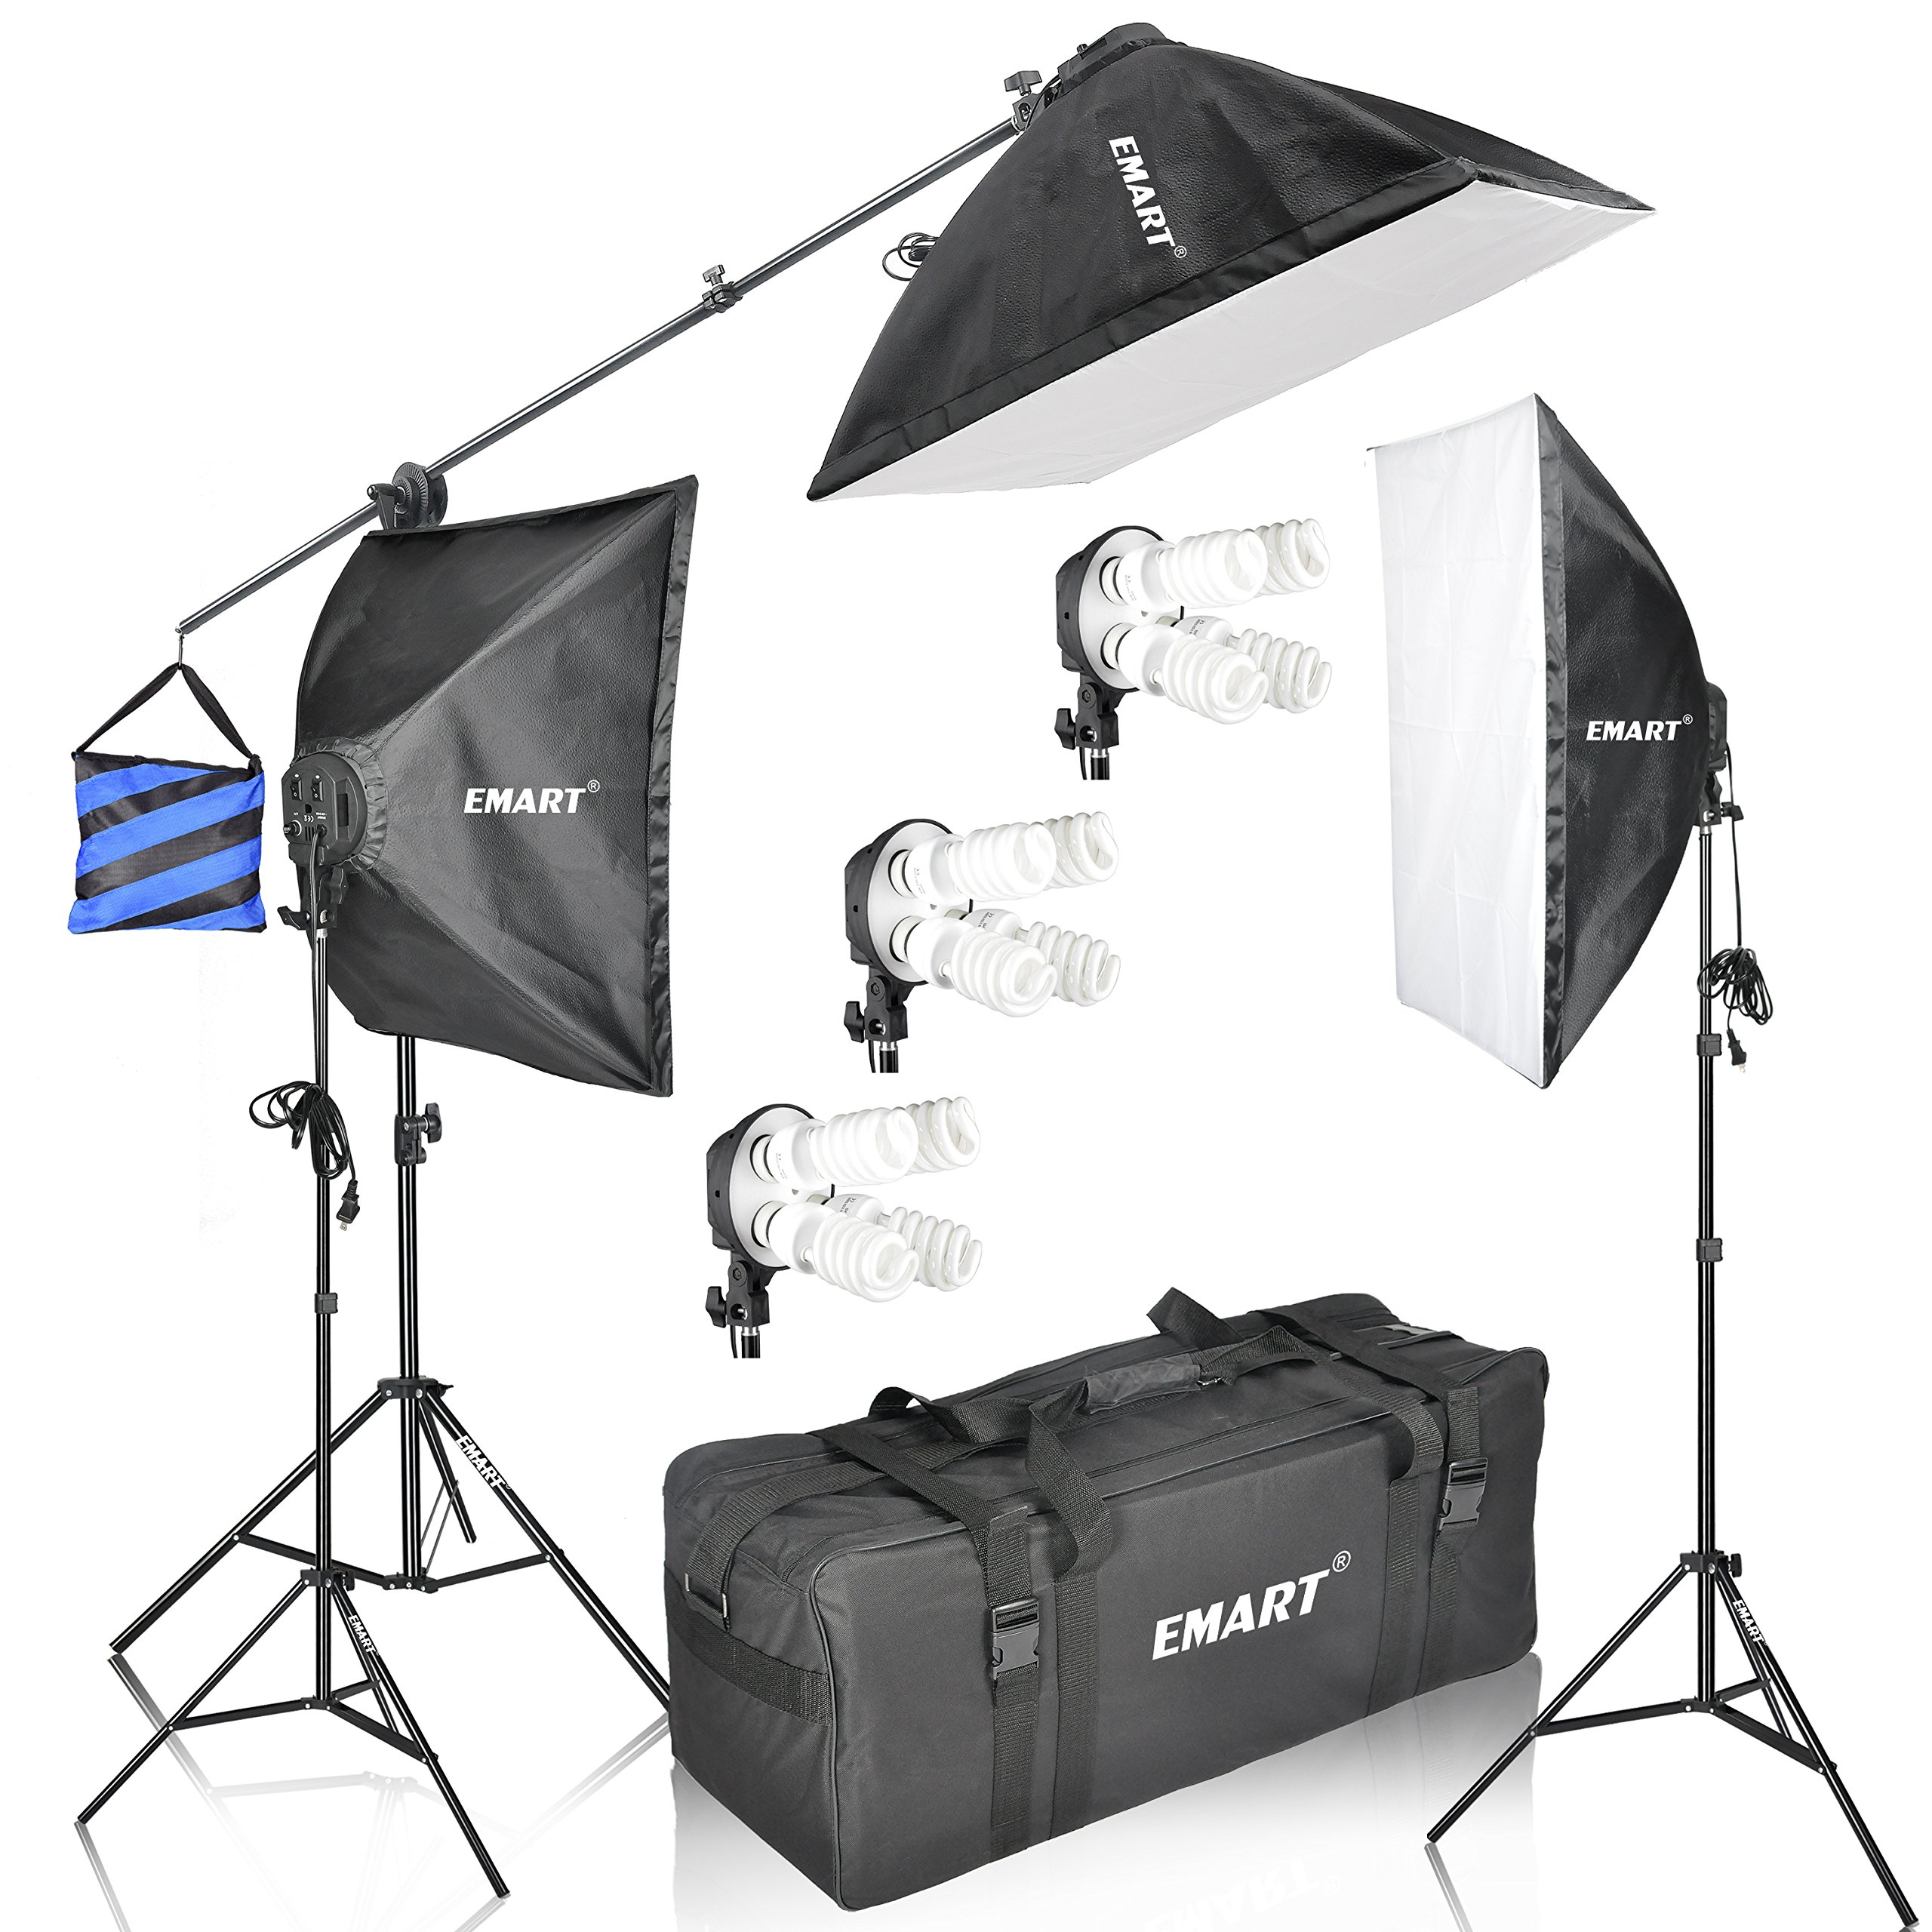 Emart 2400 Watt Continuous Lighting Studio Kit with Three Softbox Light 20'' x 28'', Boom Arm Hairlight for Photography Lighting and Photo Vedio Shooting